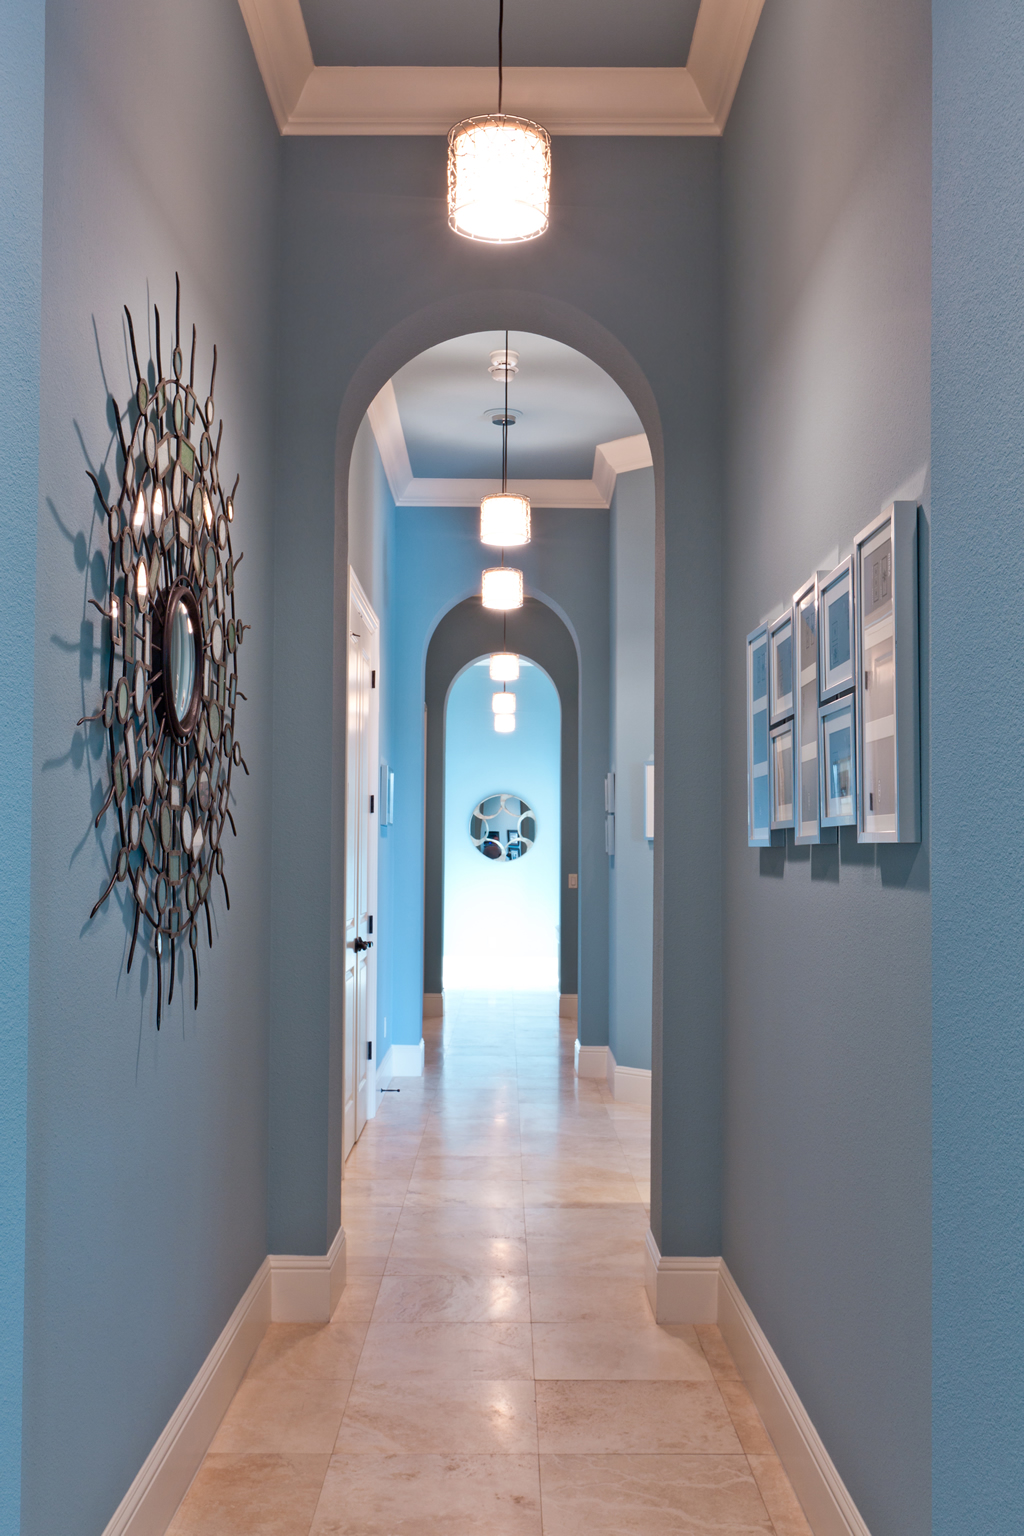 Hallway with light blue walls and tiled floors